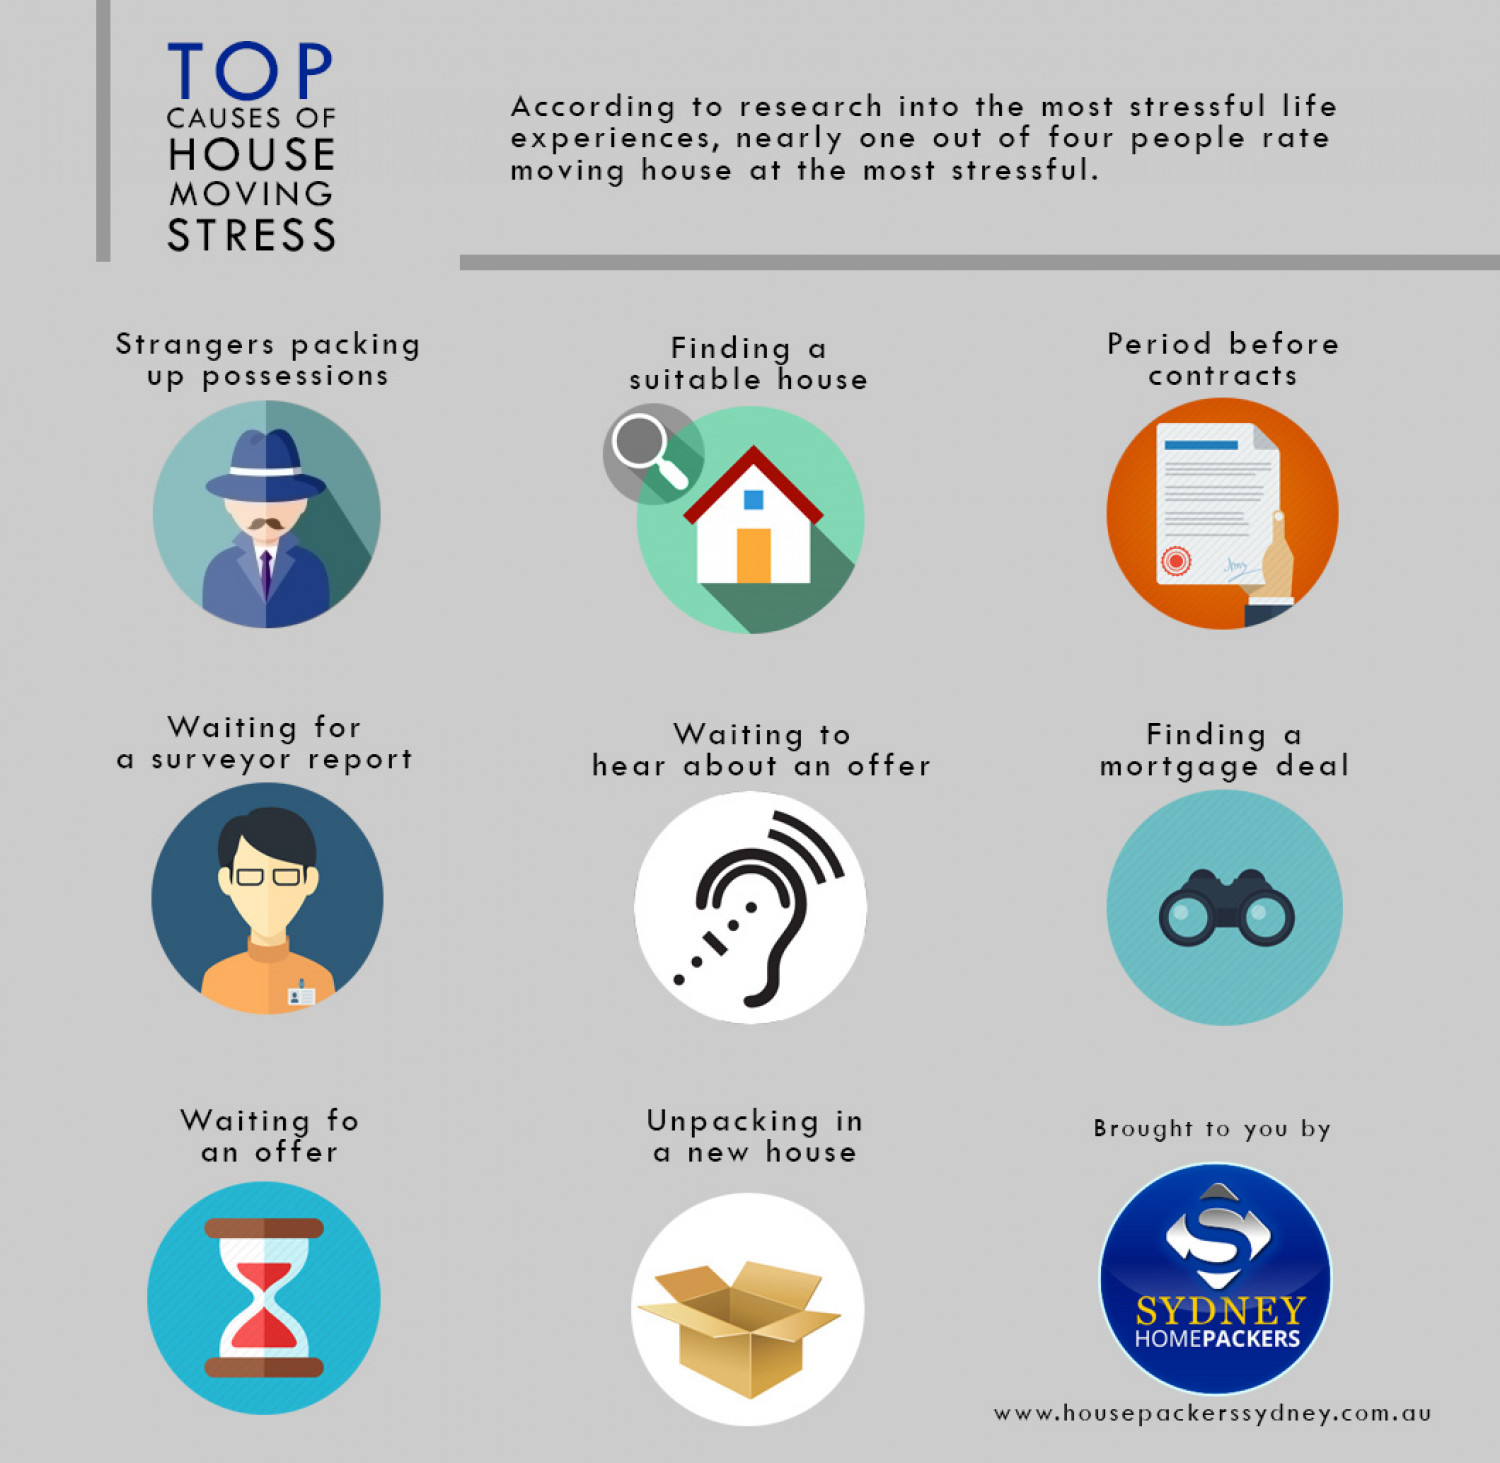 cause of stress Examples of stress include financial, marital, work- and health-related stress we all have our ways of coping with change, so the causes of stress can be different for each person stress can be either good or bad good stress positively compels people to action (eg to study for an exam, or a baby learning.